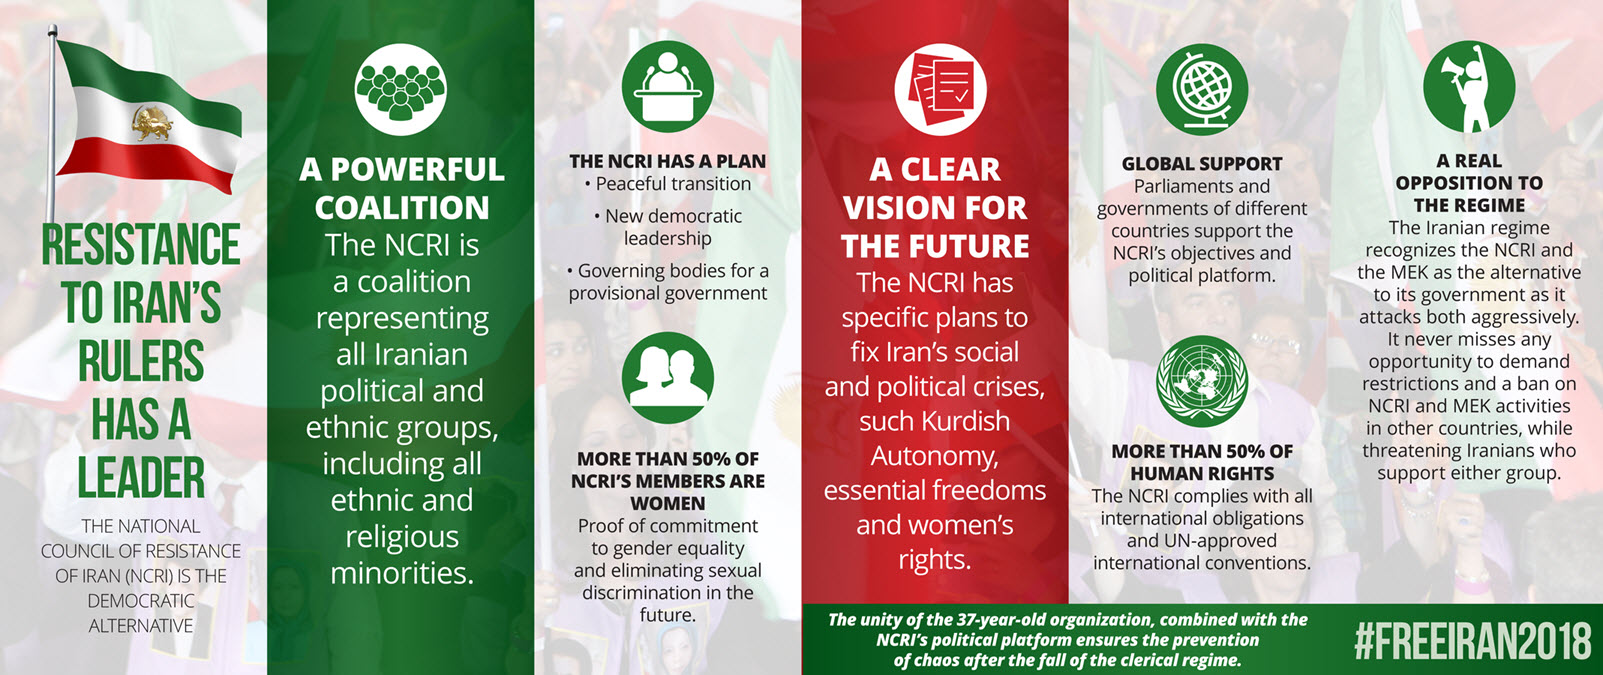 The National Council of Resistance of Iran (Ncri) Is the Democratic Alternative.